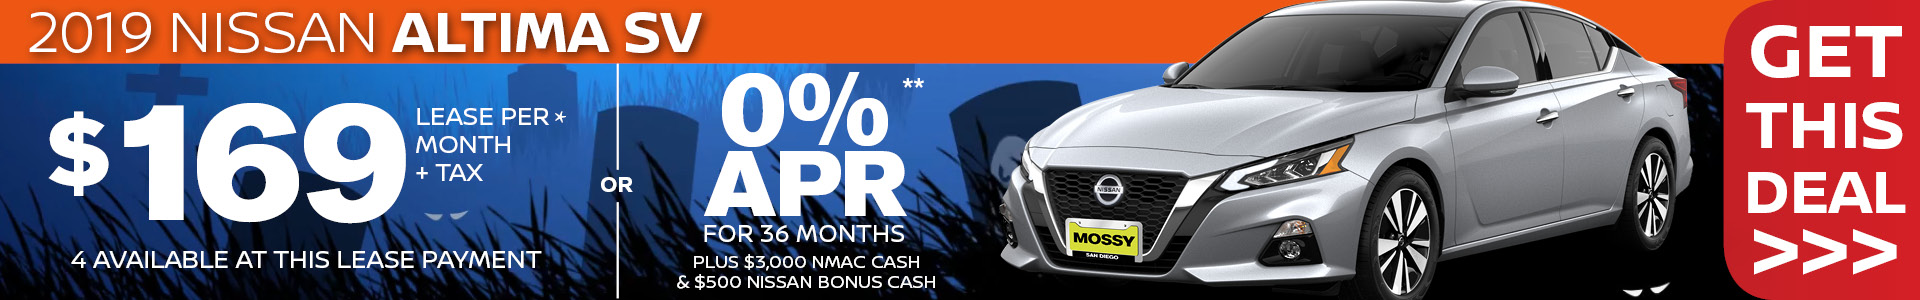 Mossy Nissan - Nissan Altima $19,995 Purchase